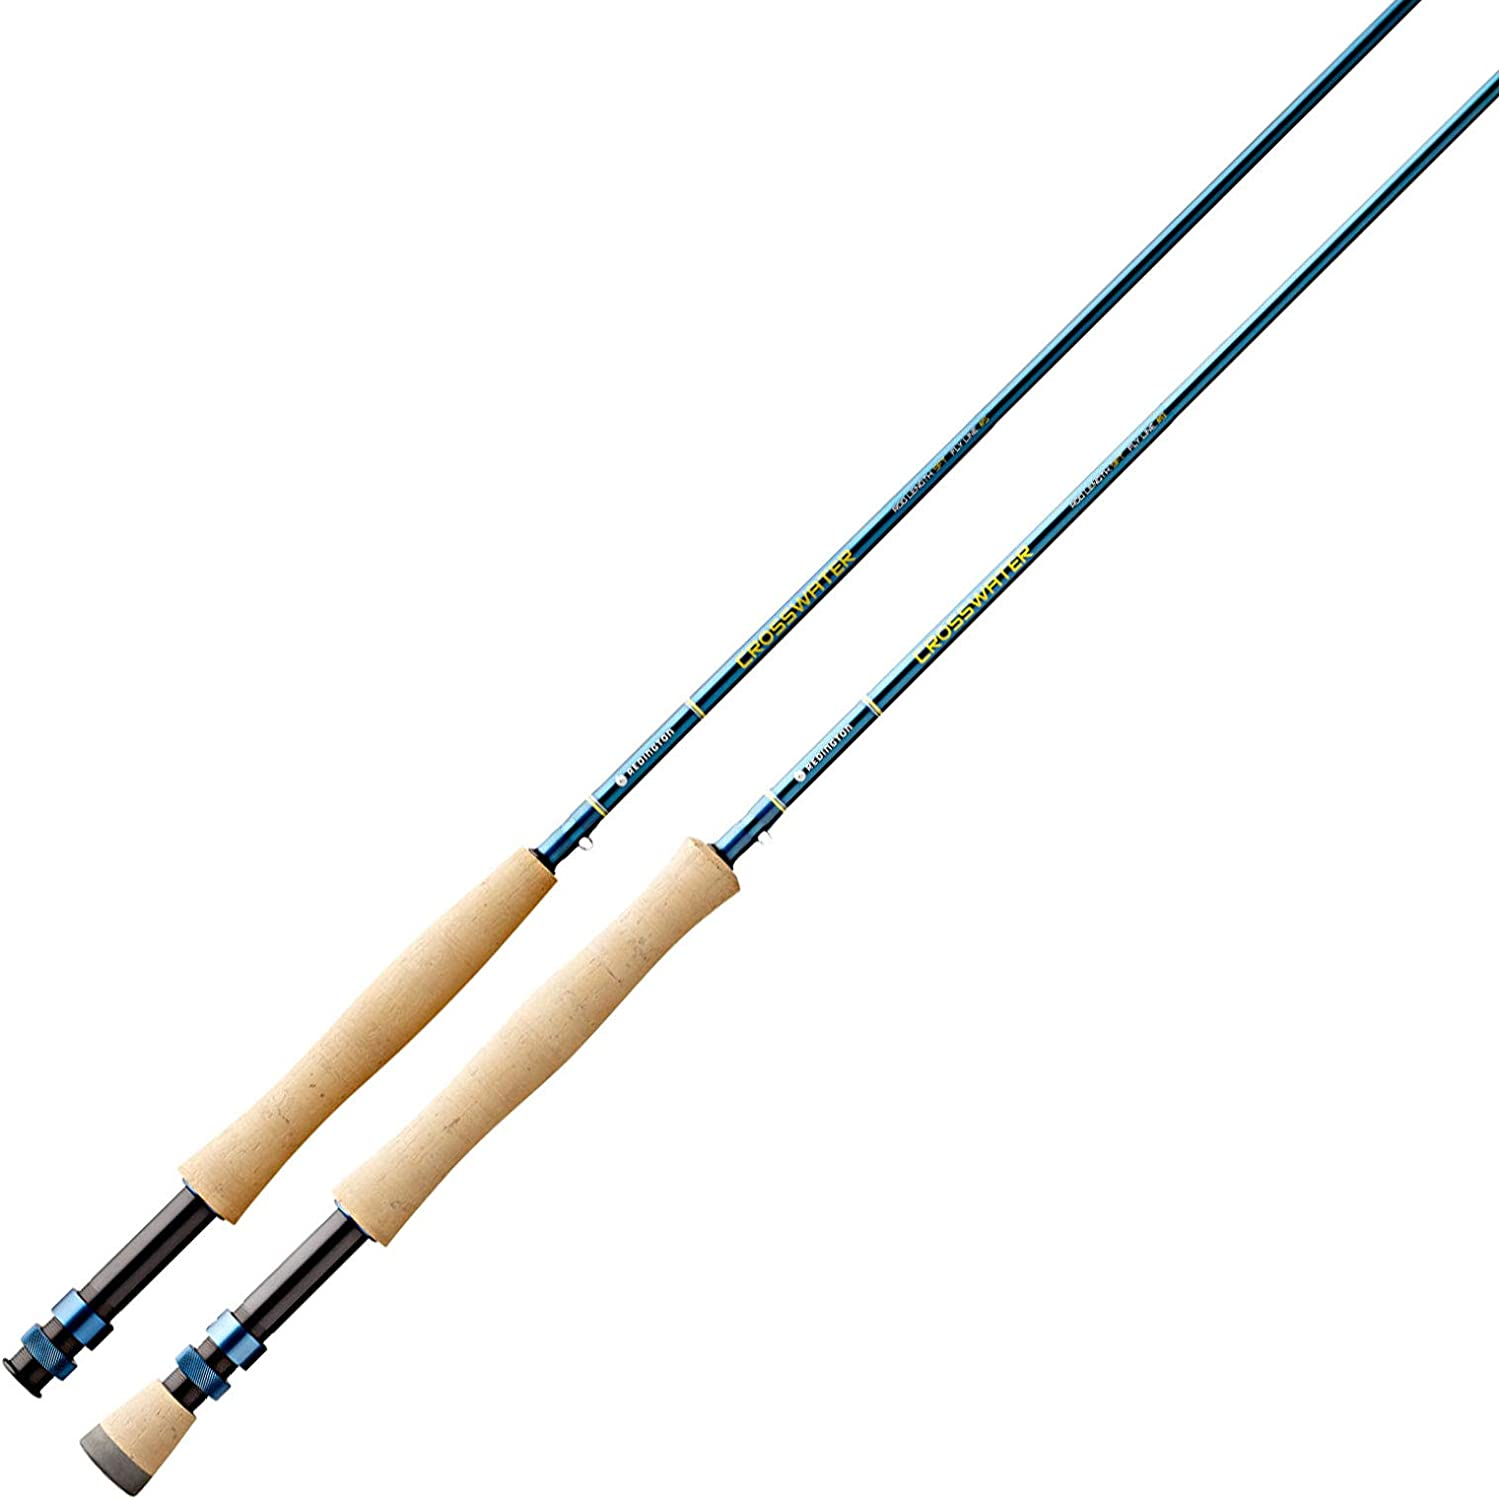 "Redington Crosswater Fly Rod (476-4) - 4 Weight, 7'6"" Fly Fishing Rod"